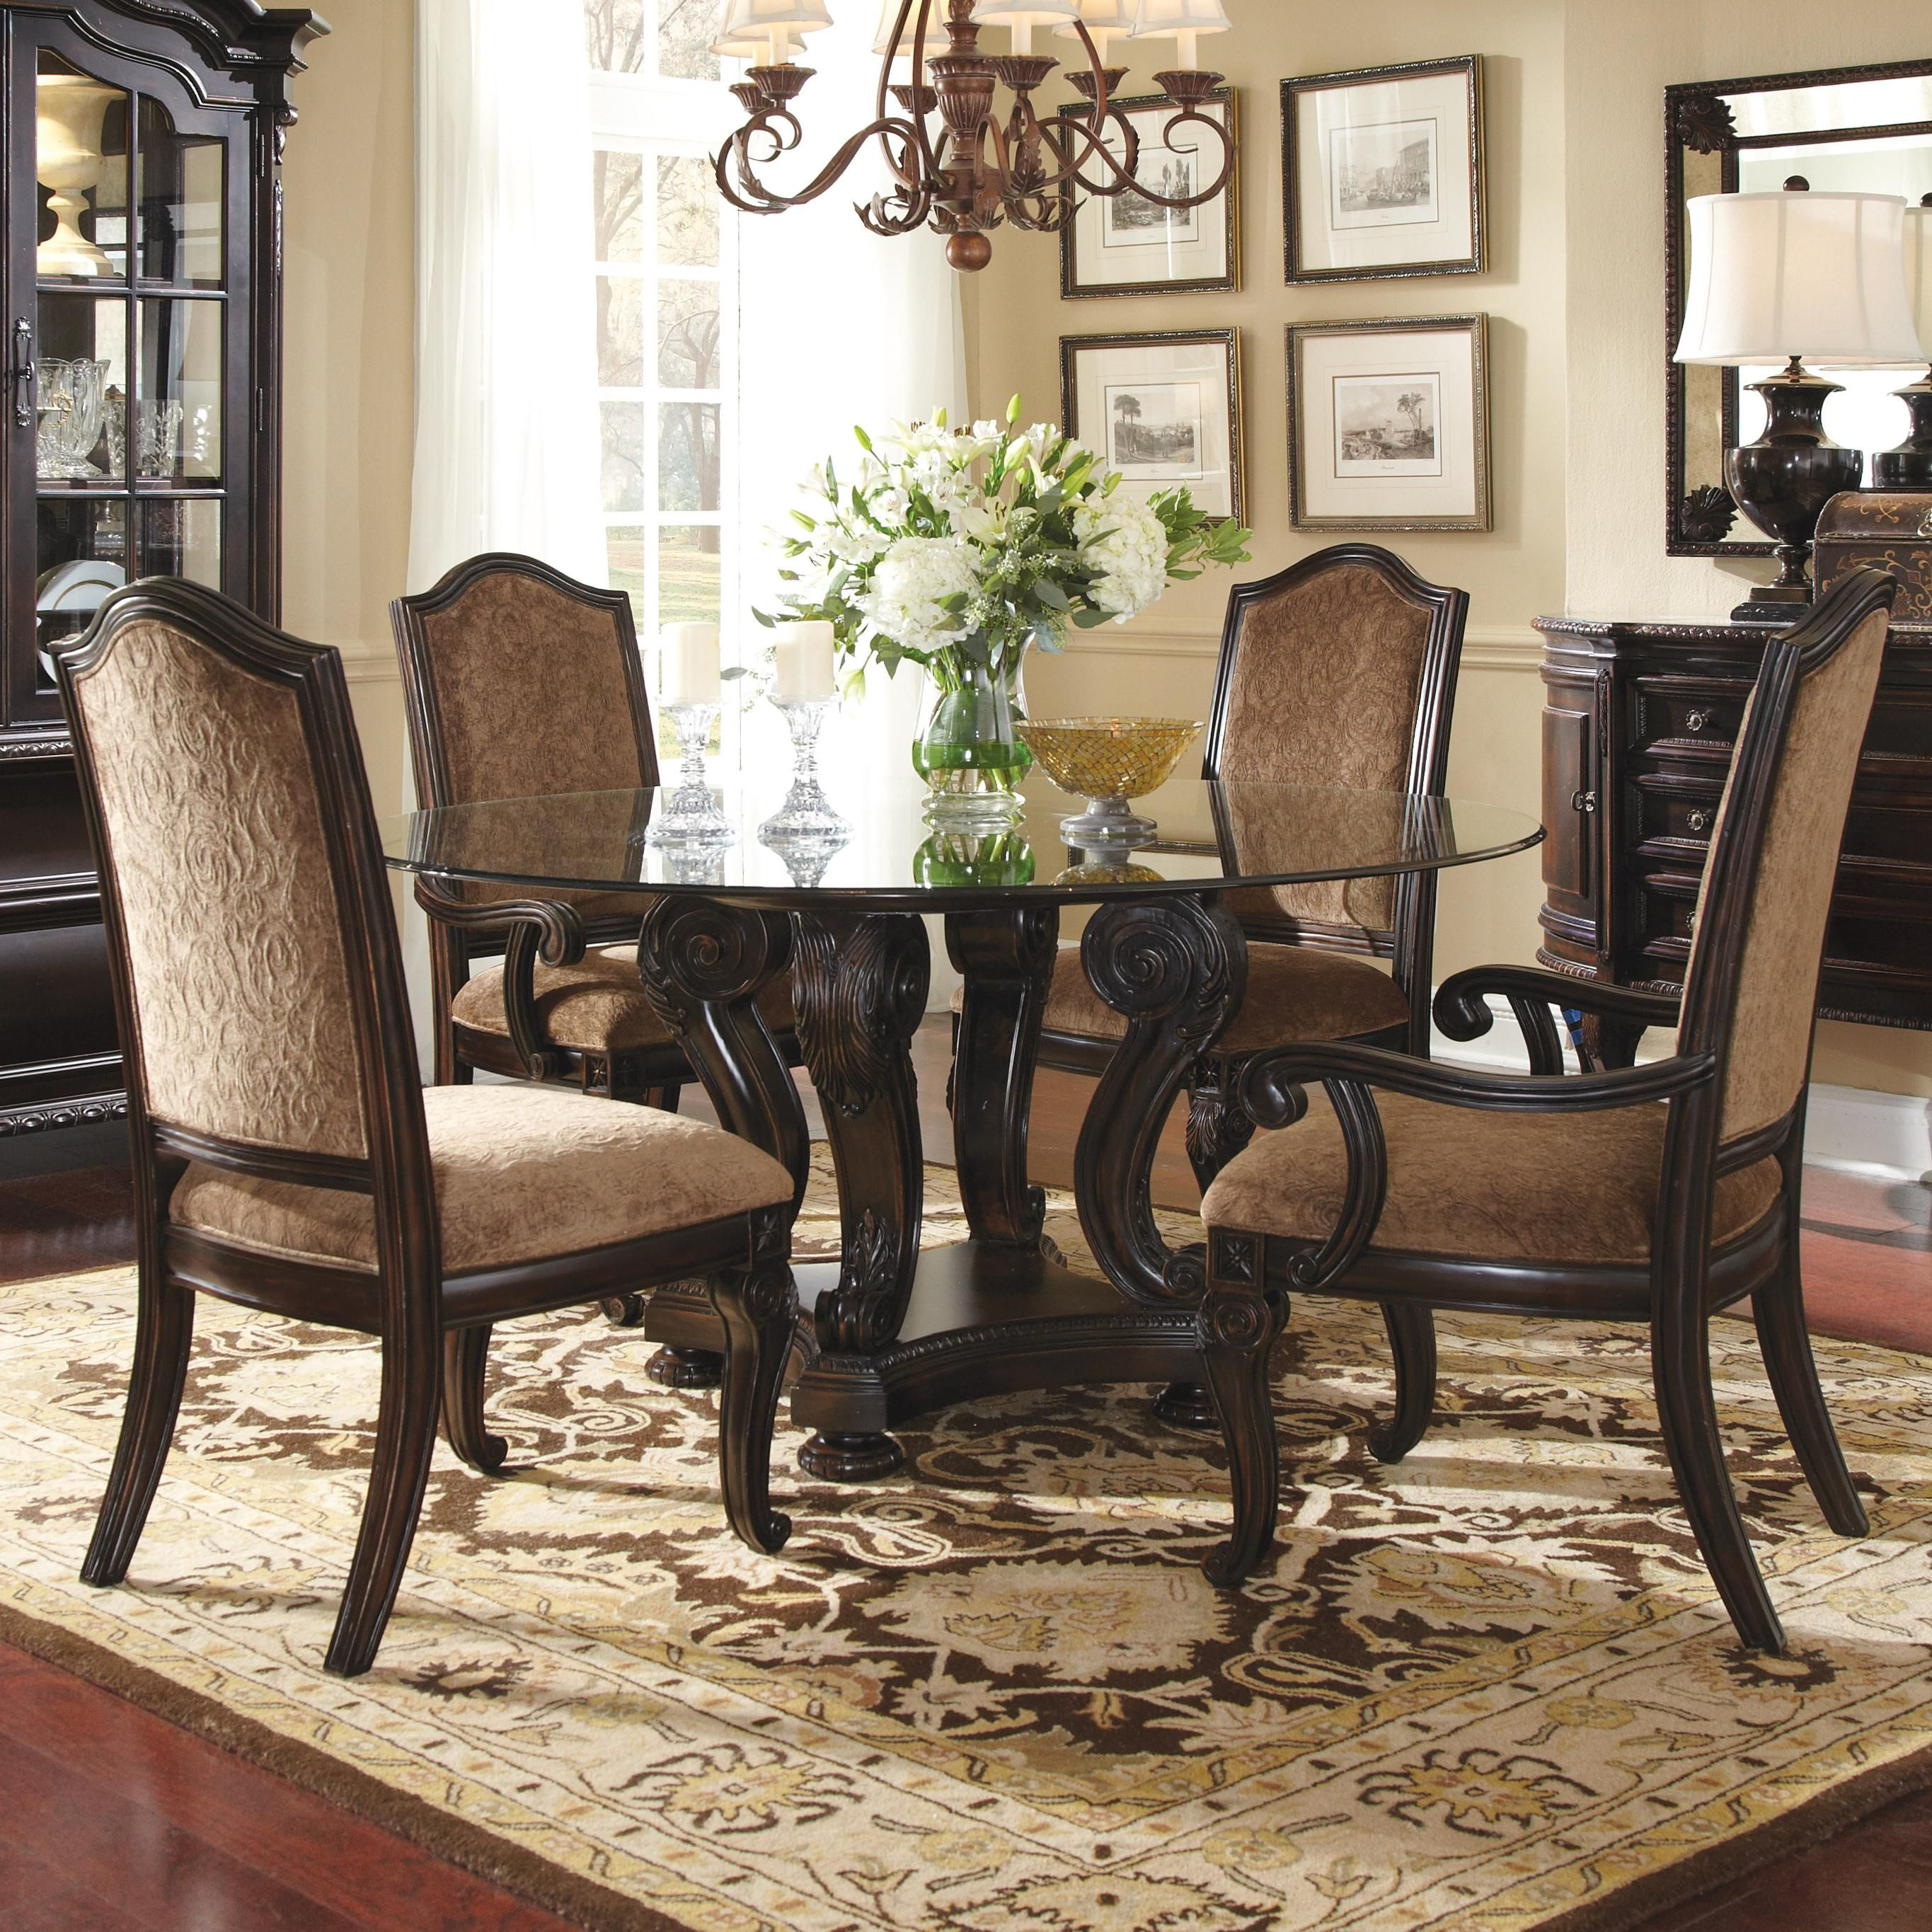 Great Flamboyant Top Round Table Dining Room Sets Making The House Enjoyable Nice Ideas